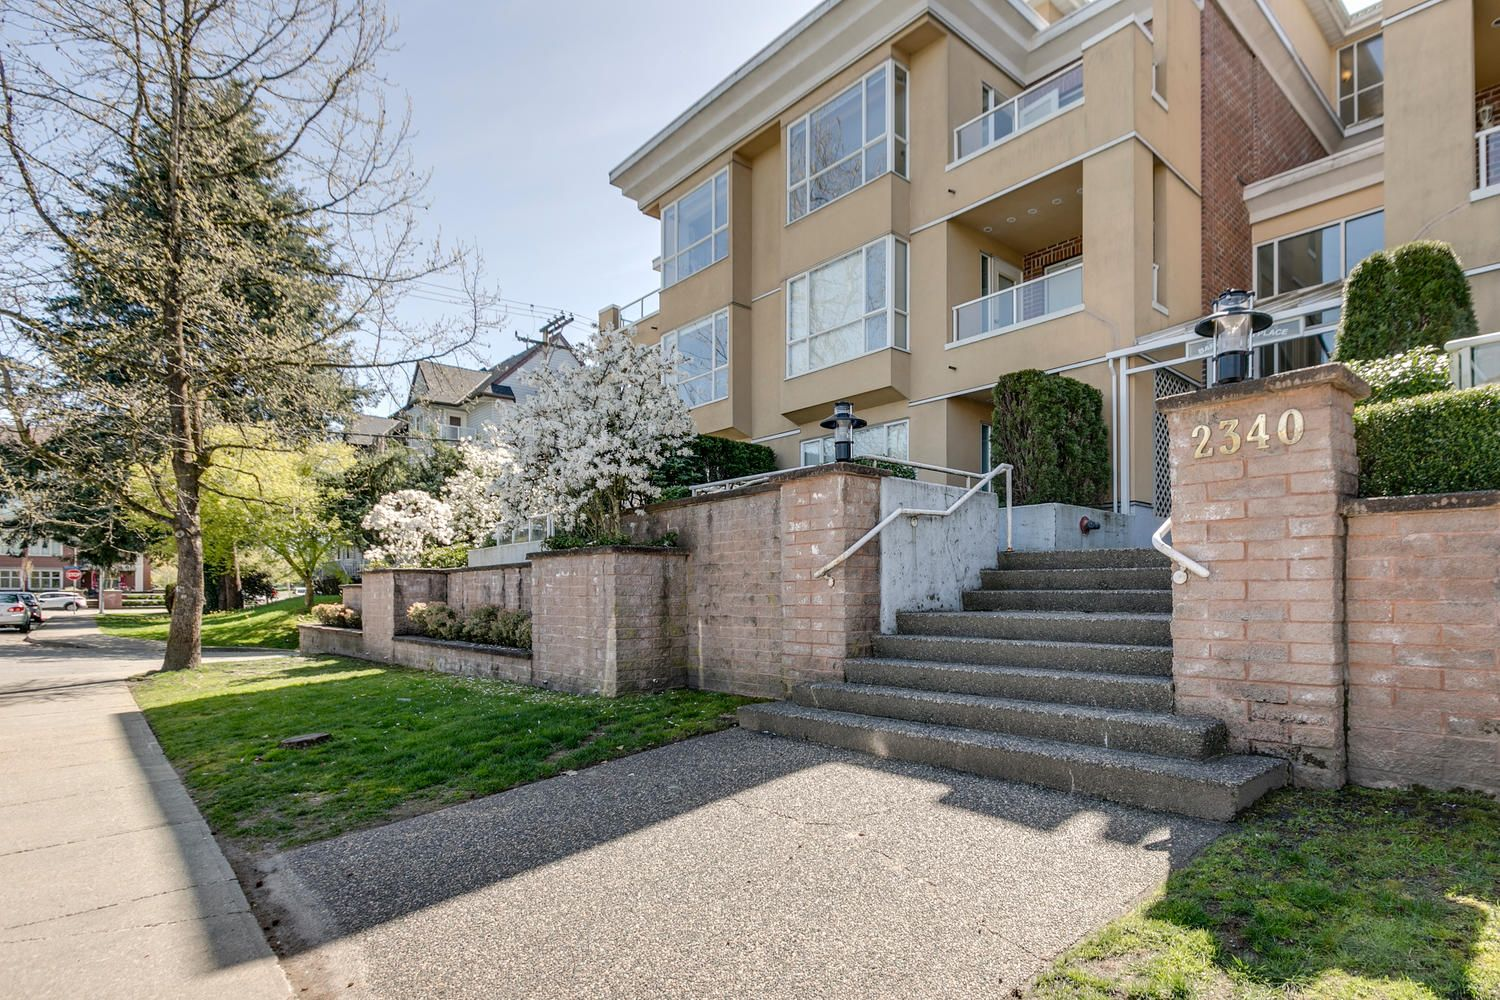 Main Photo: Port Coquitlam Condo for Sale 102 2340 Hawthorne Ave 2 bedrooms 1 bathroom 786 sq. ft.